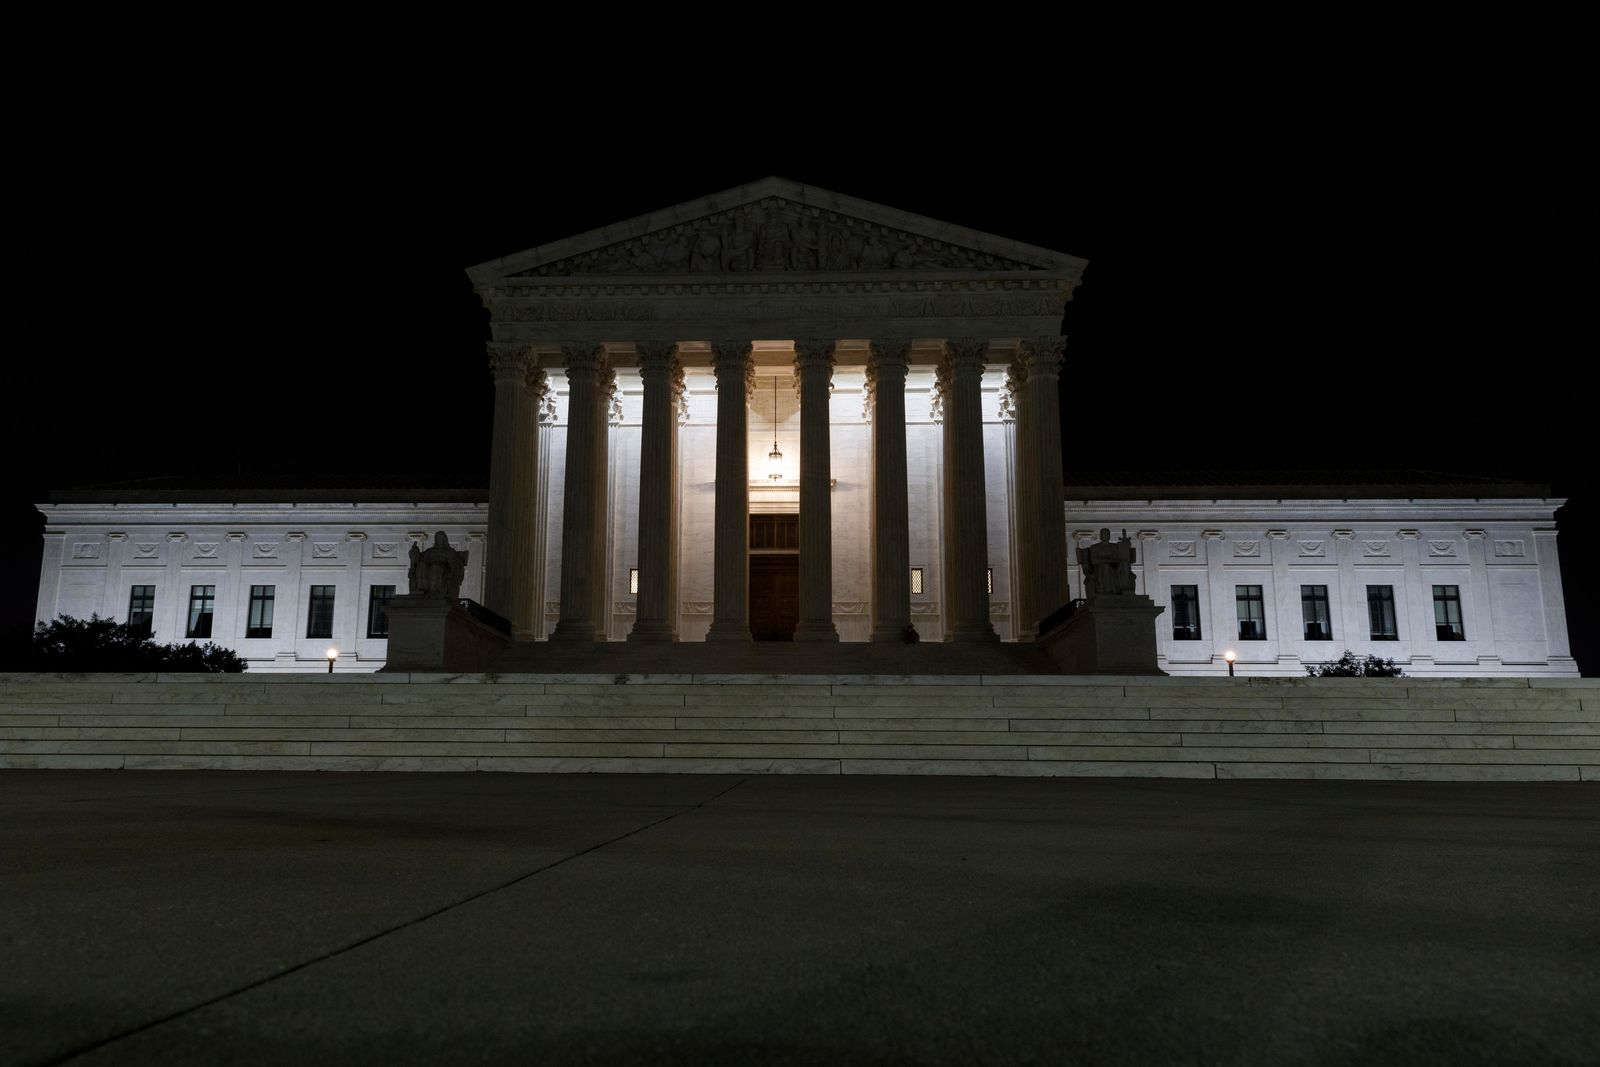 The Supreme Court is seen in Washington, late Tuesday, July 16, 2019. Former U.S. Supreme Court Justice John Paul Stevens died Tuesday in Fort Lauderdale, Fla., after suffering a stroke Monday. He was 99. (AP Photo/Carolyn Kaster)